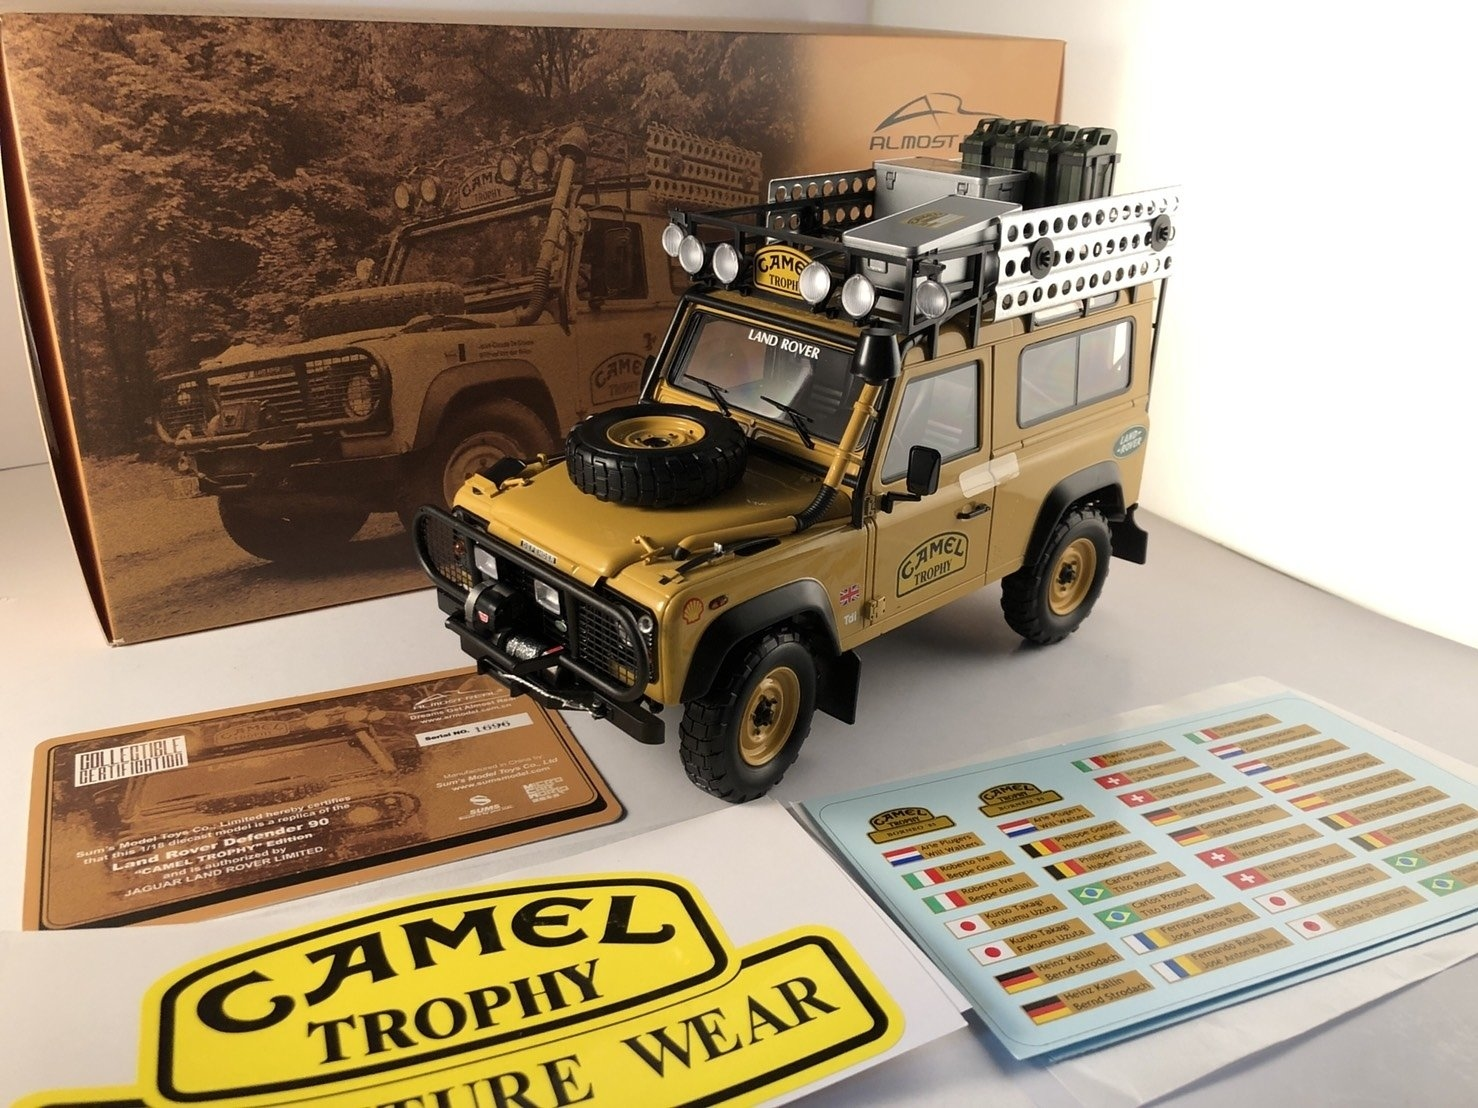 Almost Real 810211 Land Rover Defender 90 Camel Trophy Edition 駱駝杯 1/18